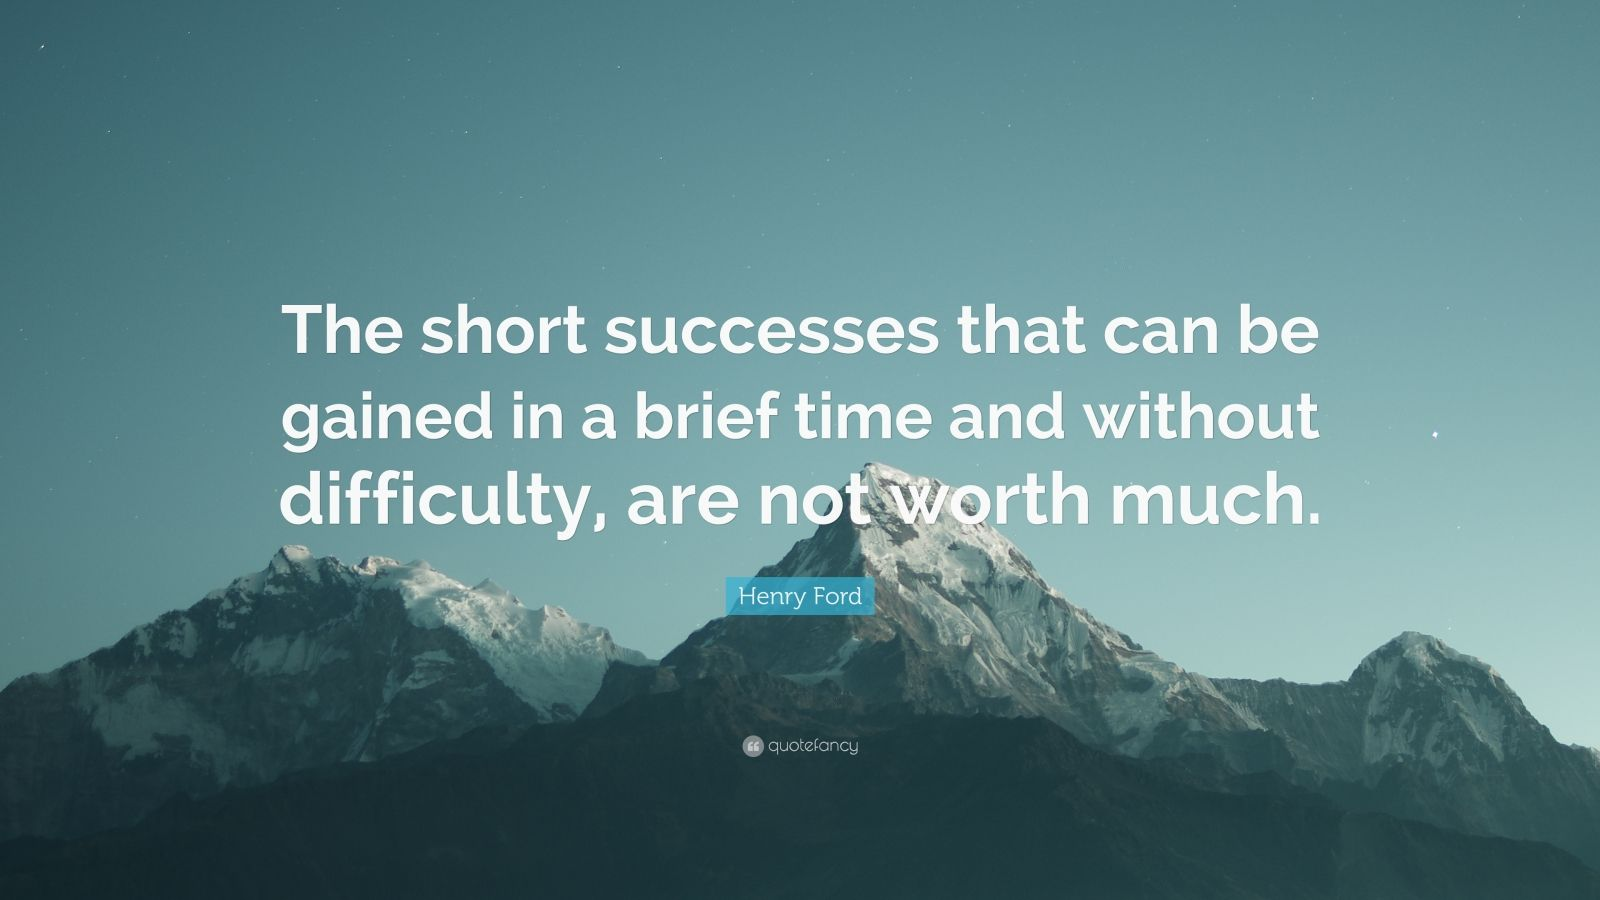 """Henry Ford Quote: """"The short successes that can be gained in a brief time and without difficulty, are not worth much."""""""